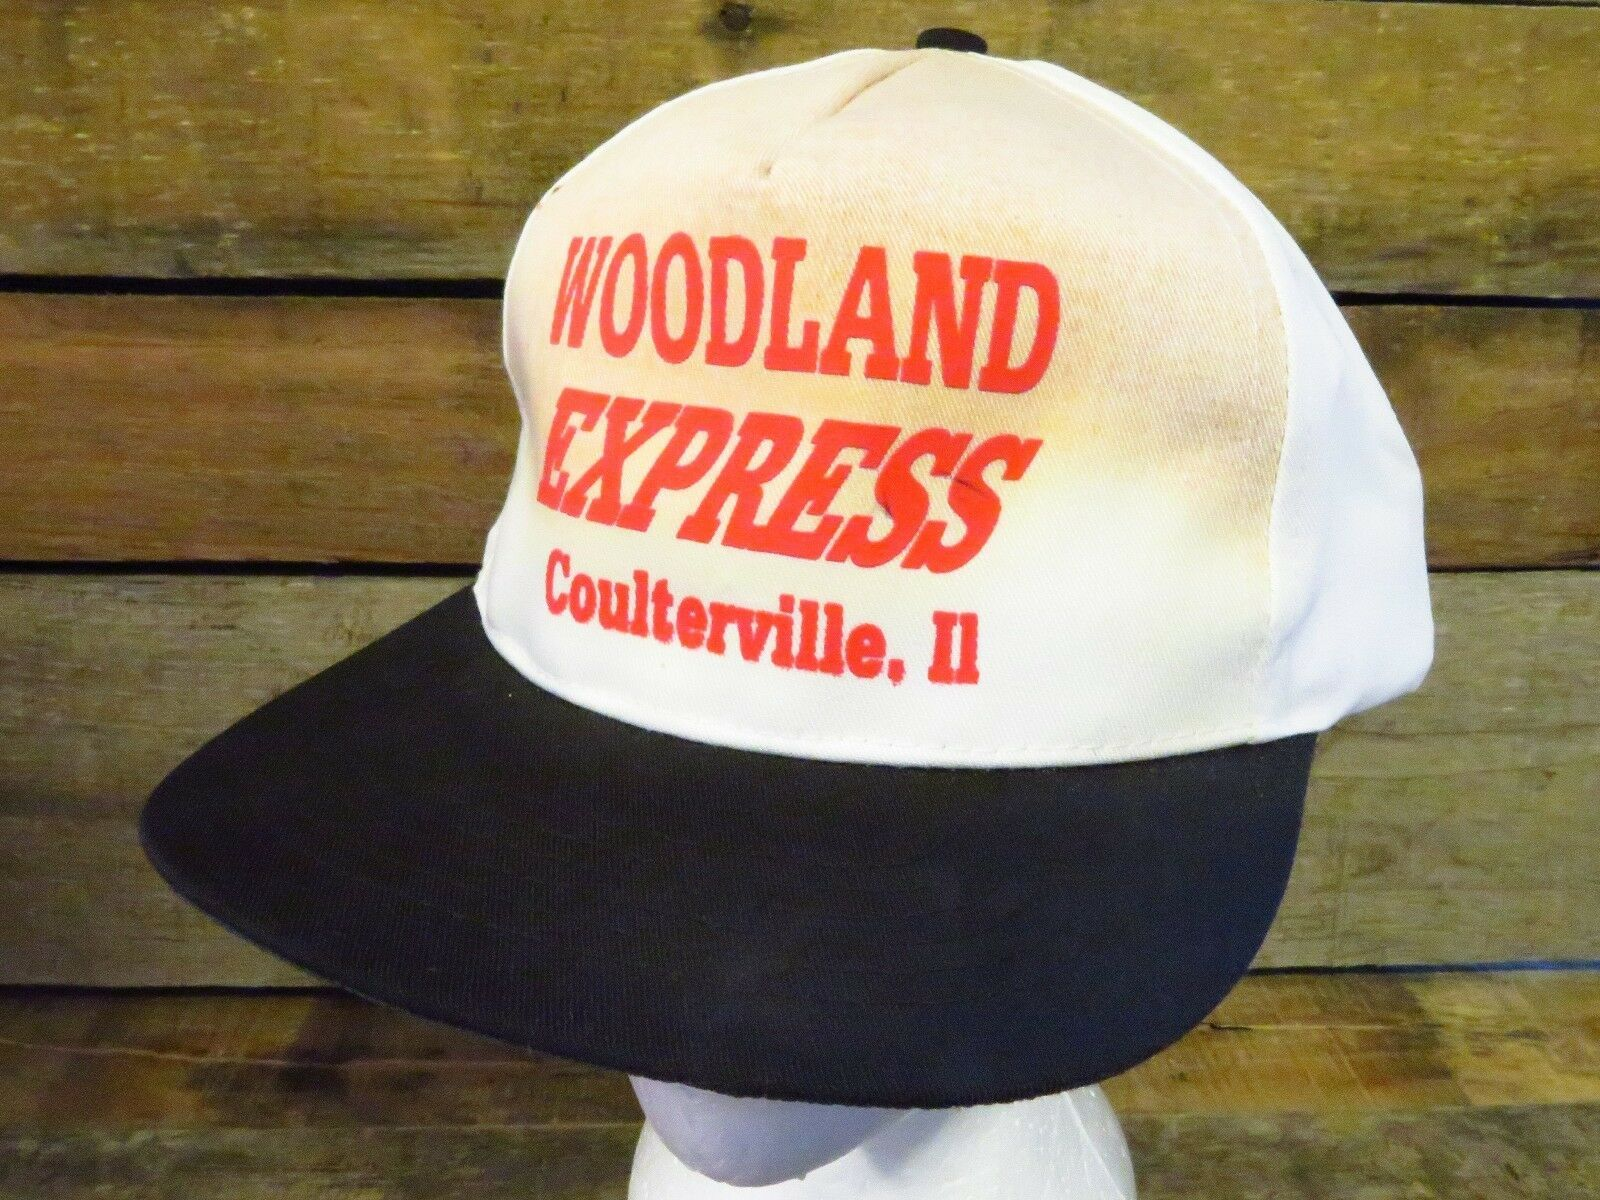 Primary image for WOODLAND EXPRESS Coulterville IL Adjustable Hat Adult Cap